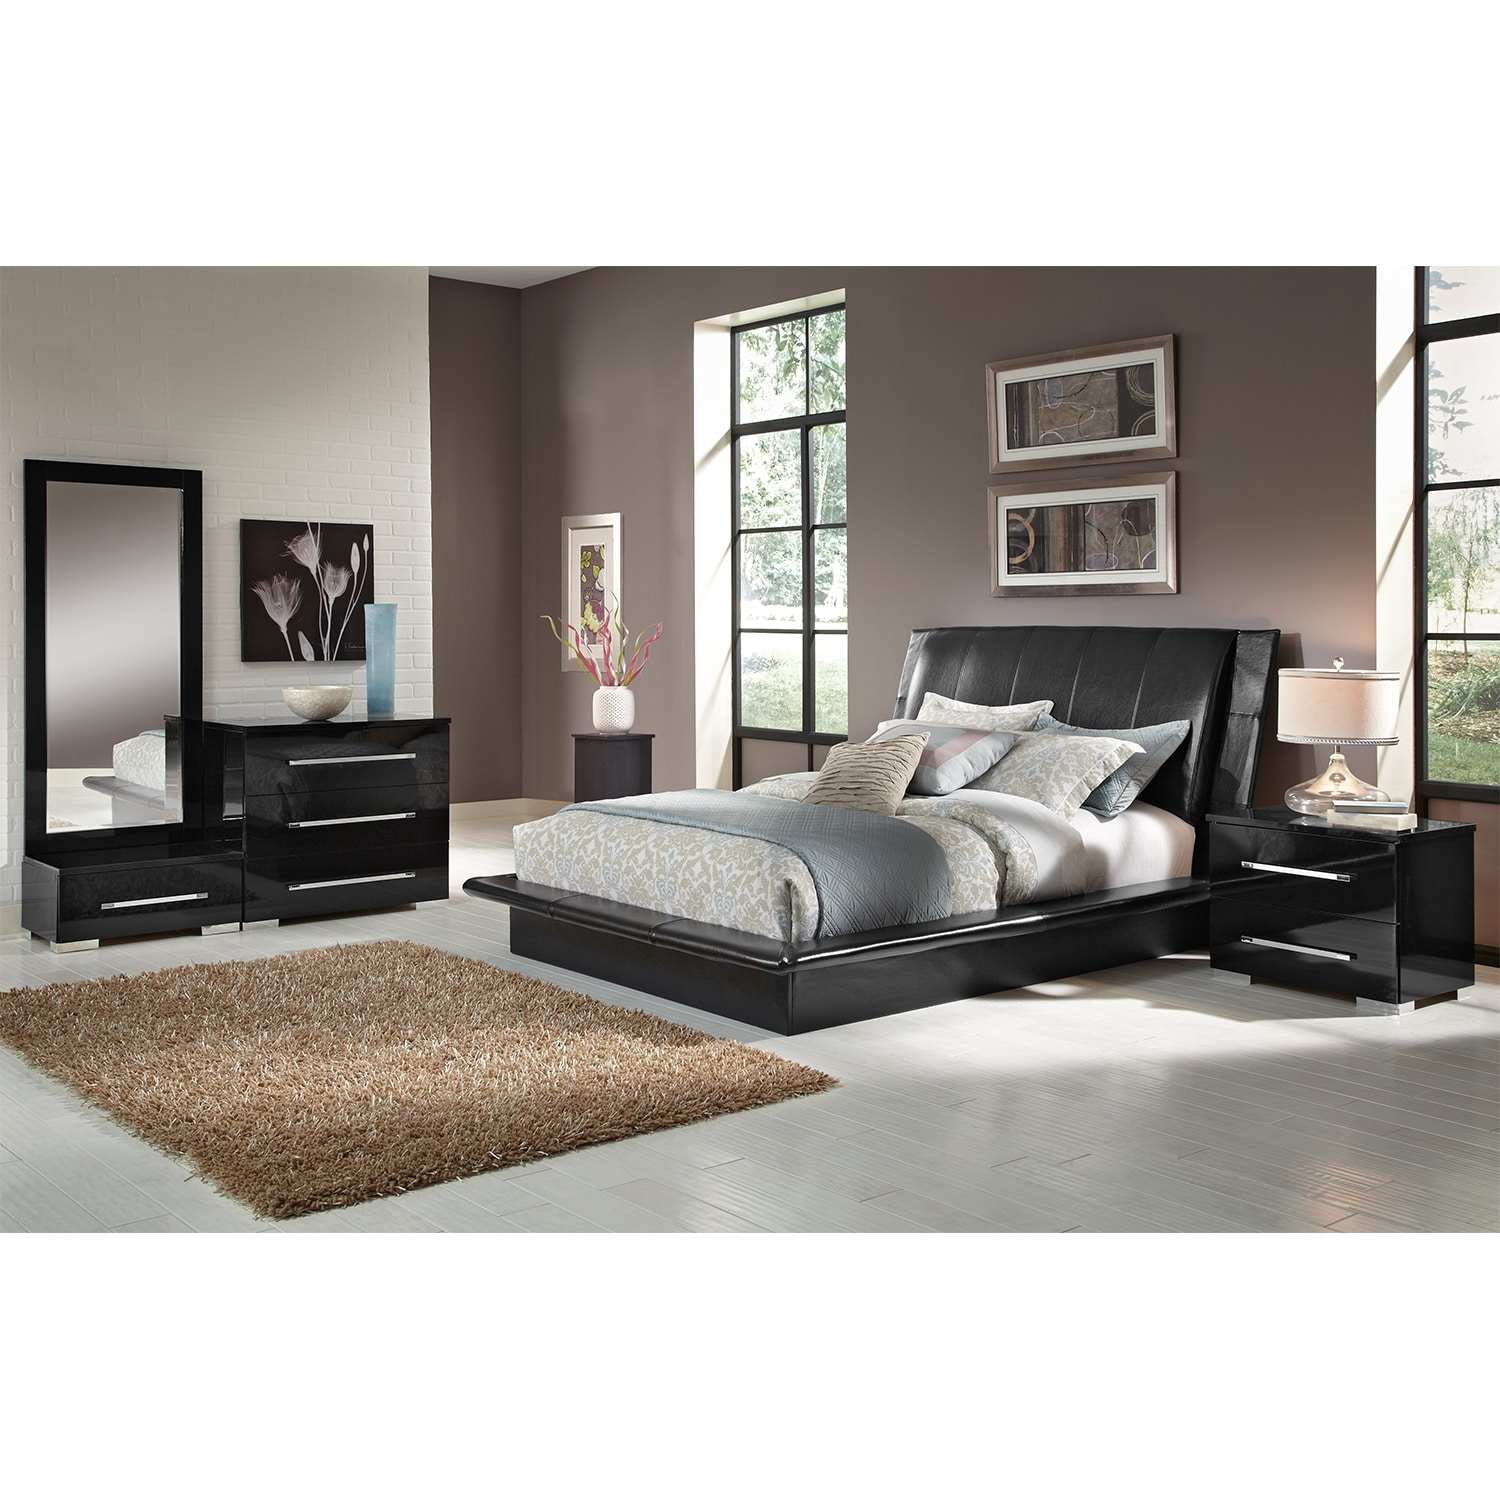 [Dimora Black 6 Pc. King Bedroom (Alternate)]